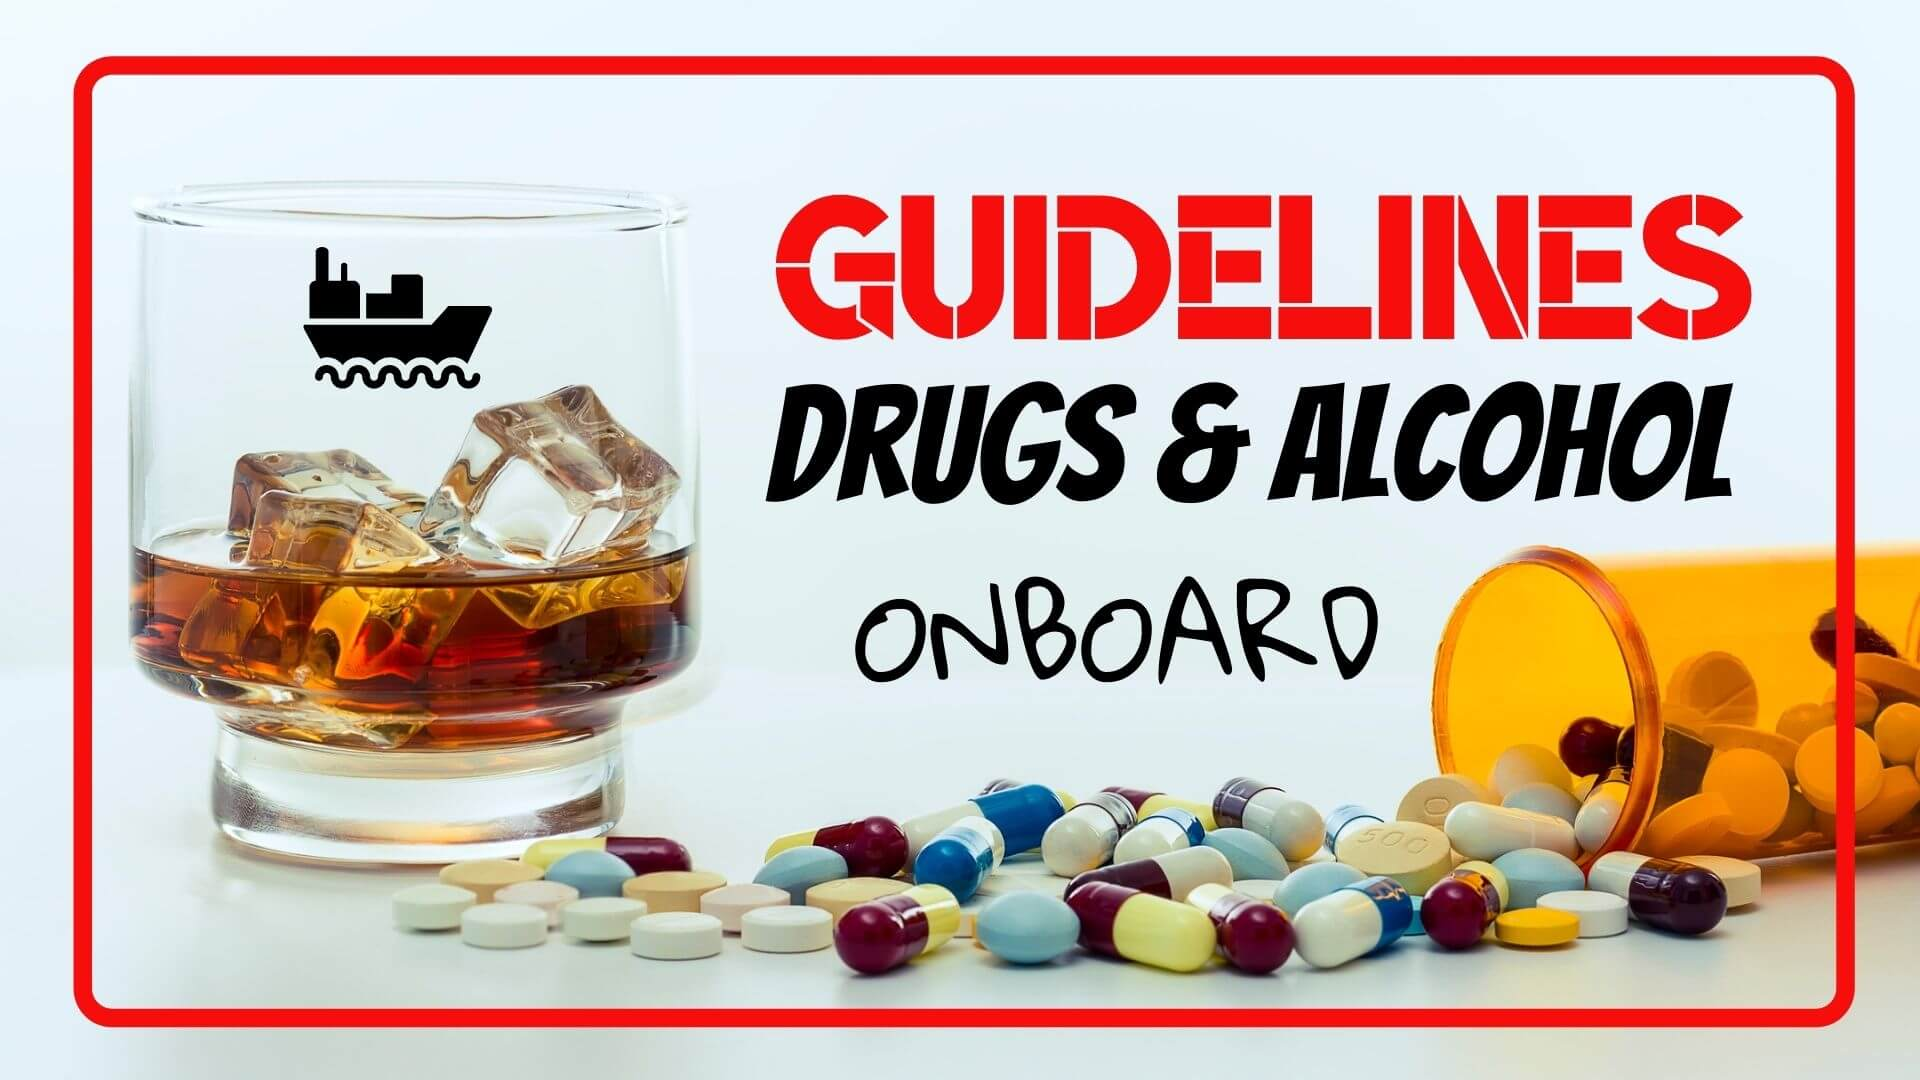 drugs and alcohol onboard